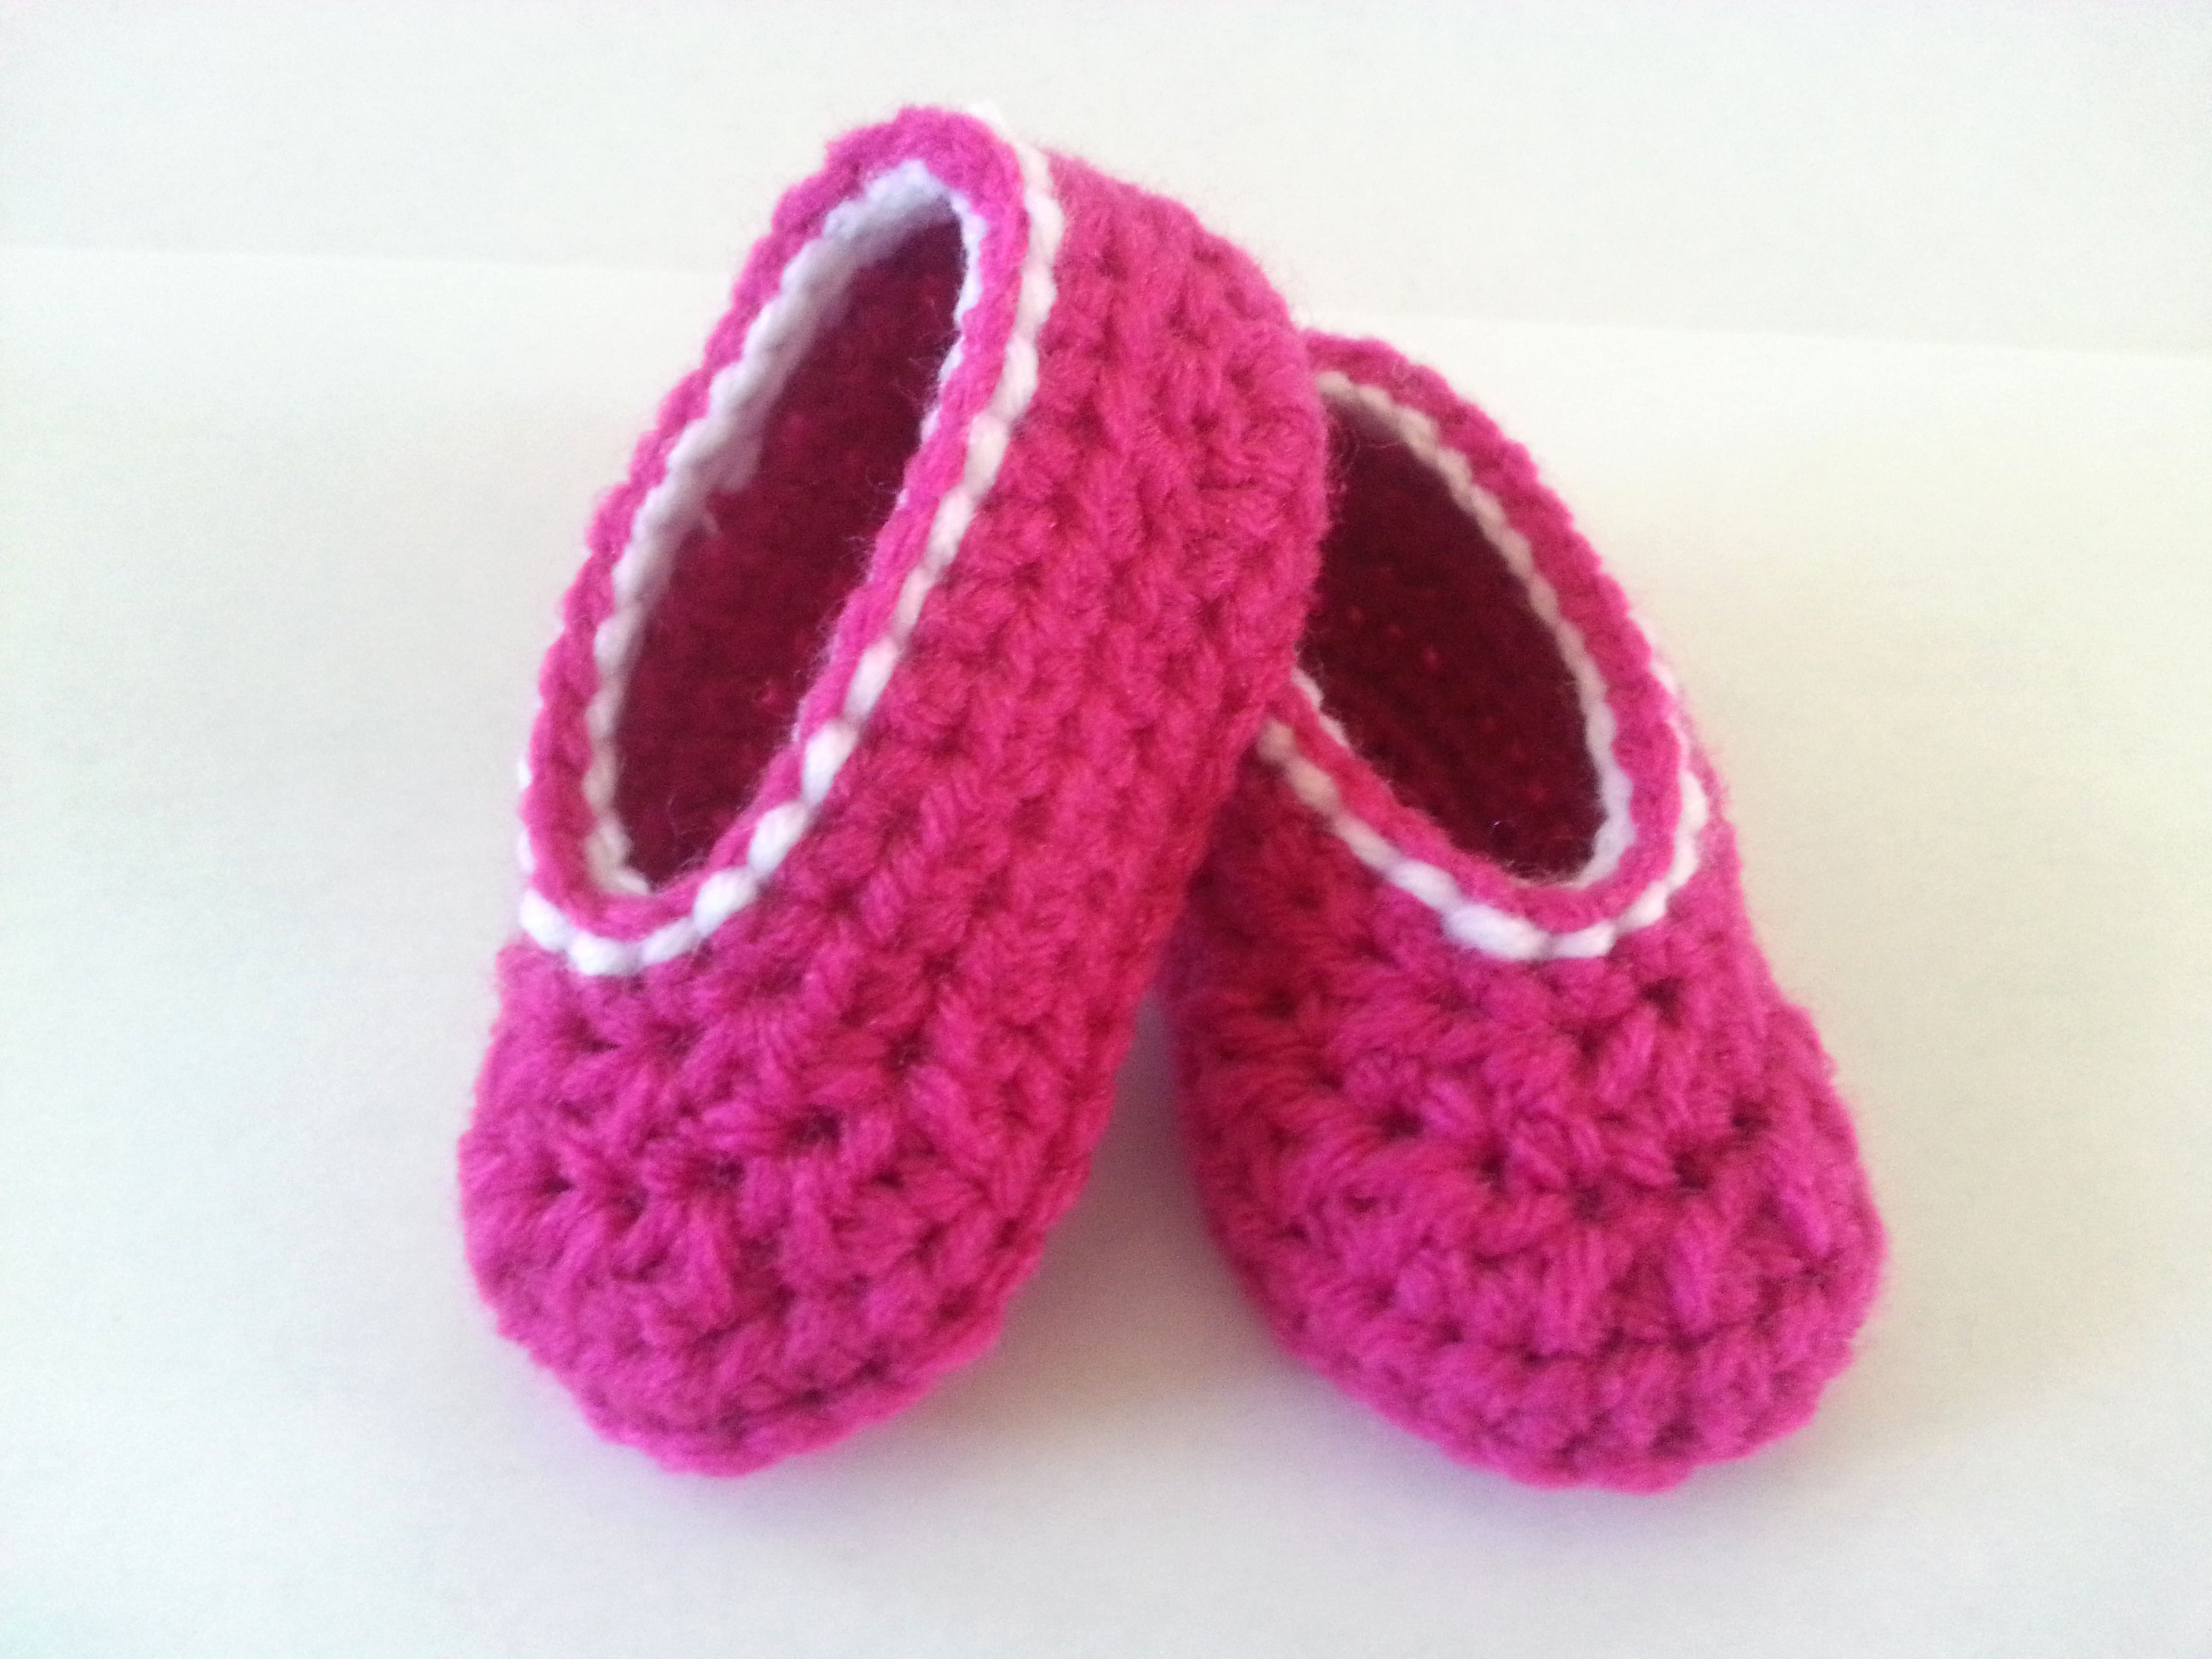 Simple baby bootie pattern crochet baby print and free crochet free crochet patterns to print simple baby bootie pattern bankloansurffo Choice Image